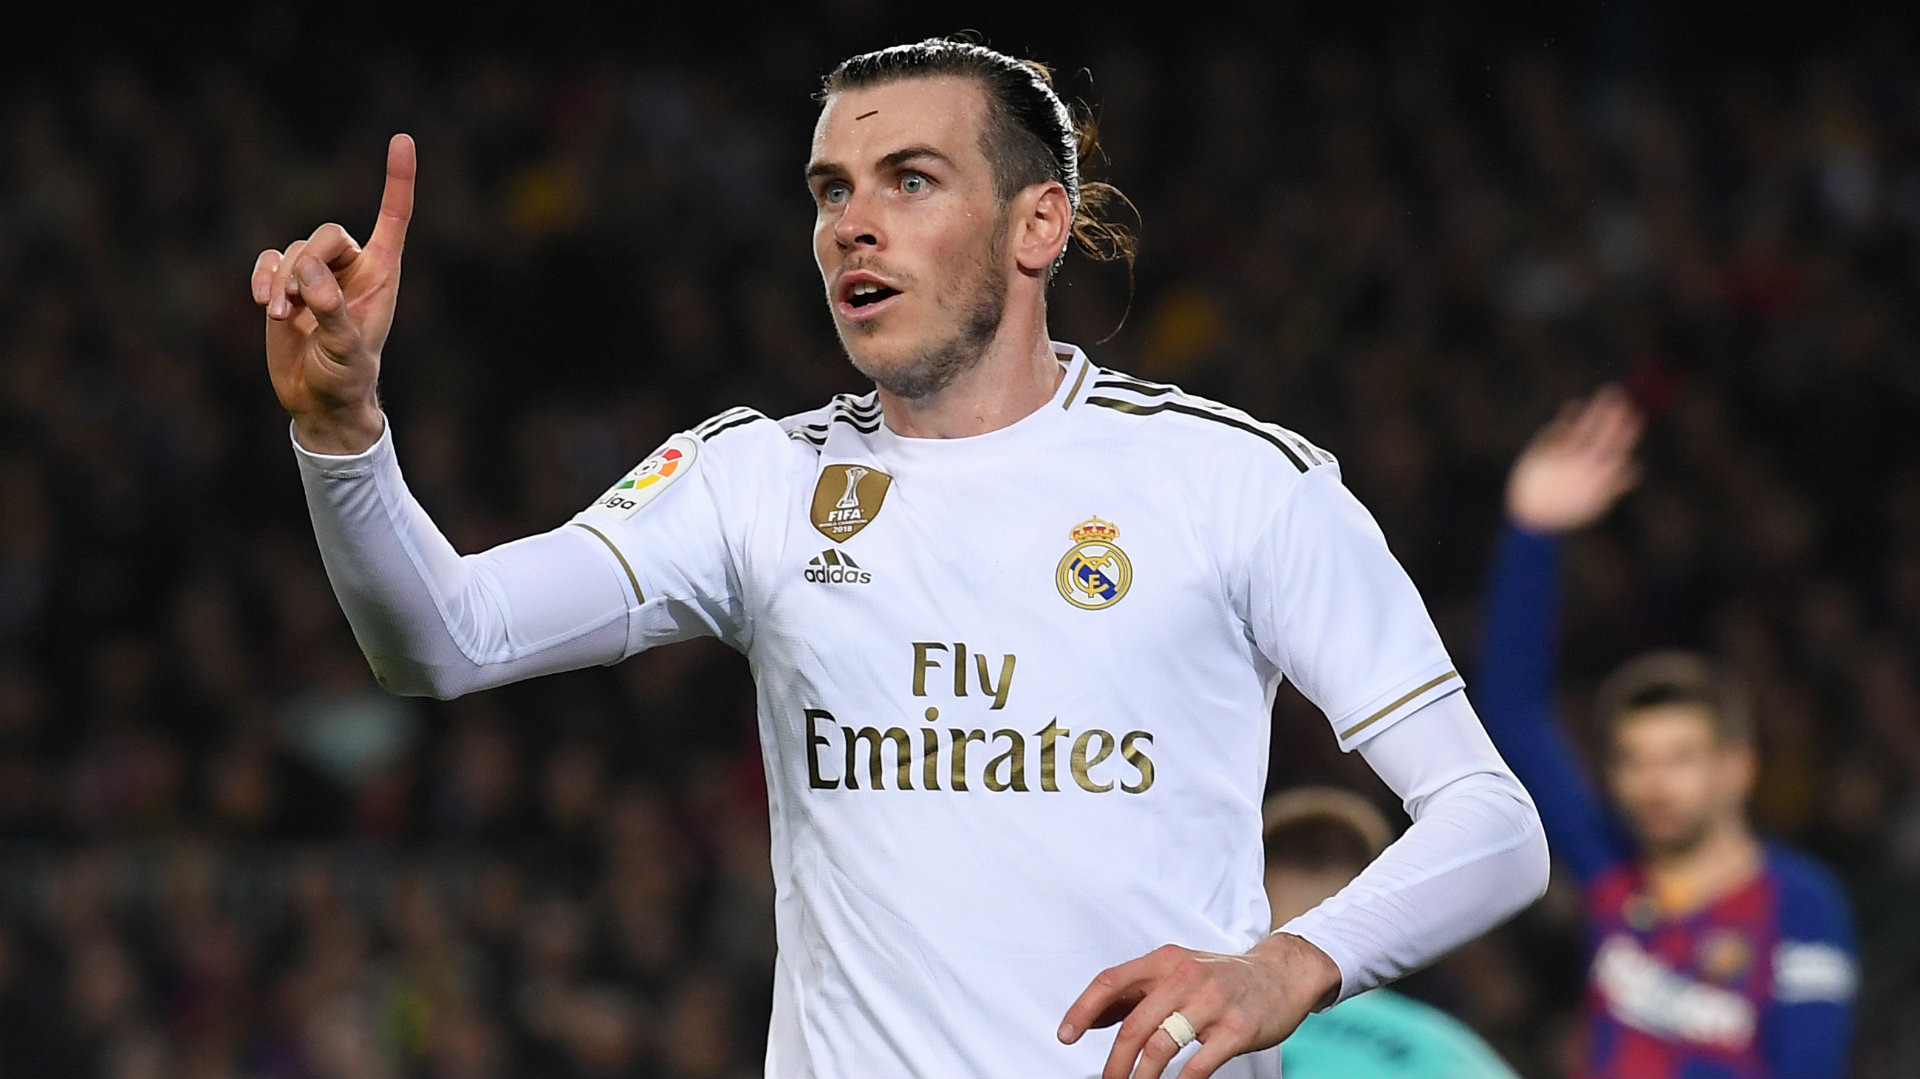 Real Madrid, Bale encore puni par Zidane